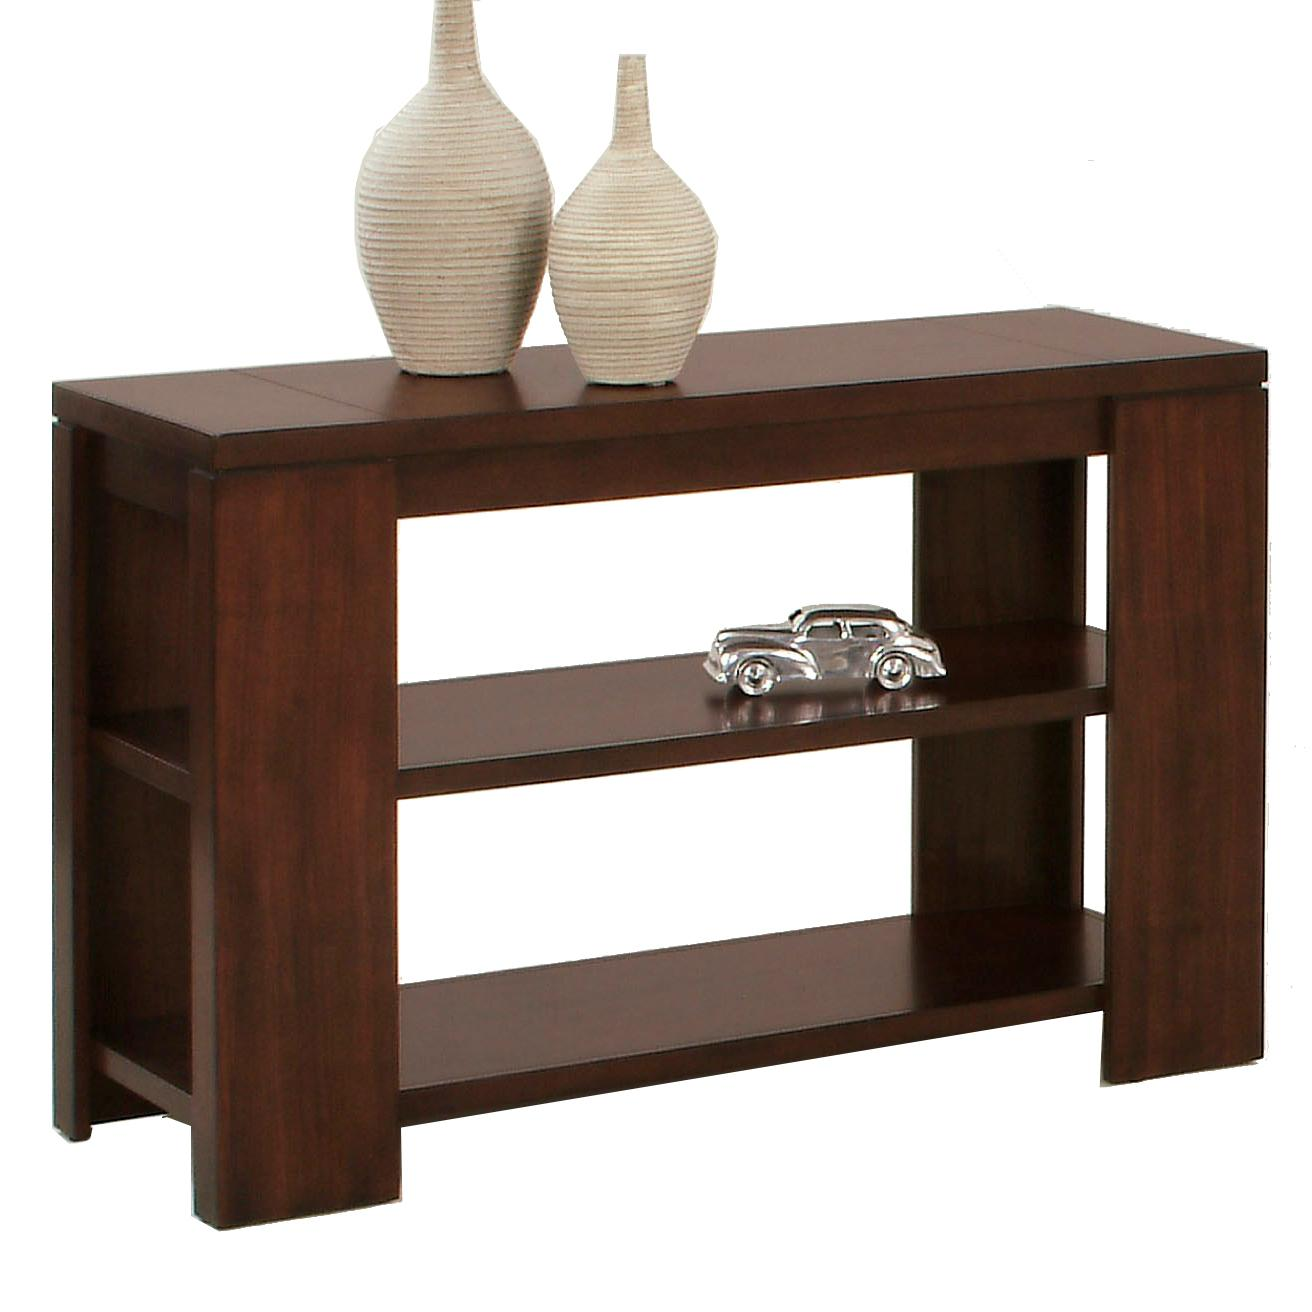 Progressive Furniture Waverly Sofa Table - Item Number: P368-05